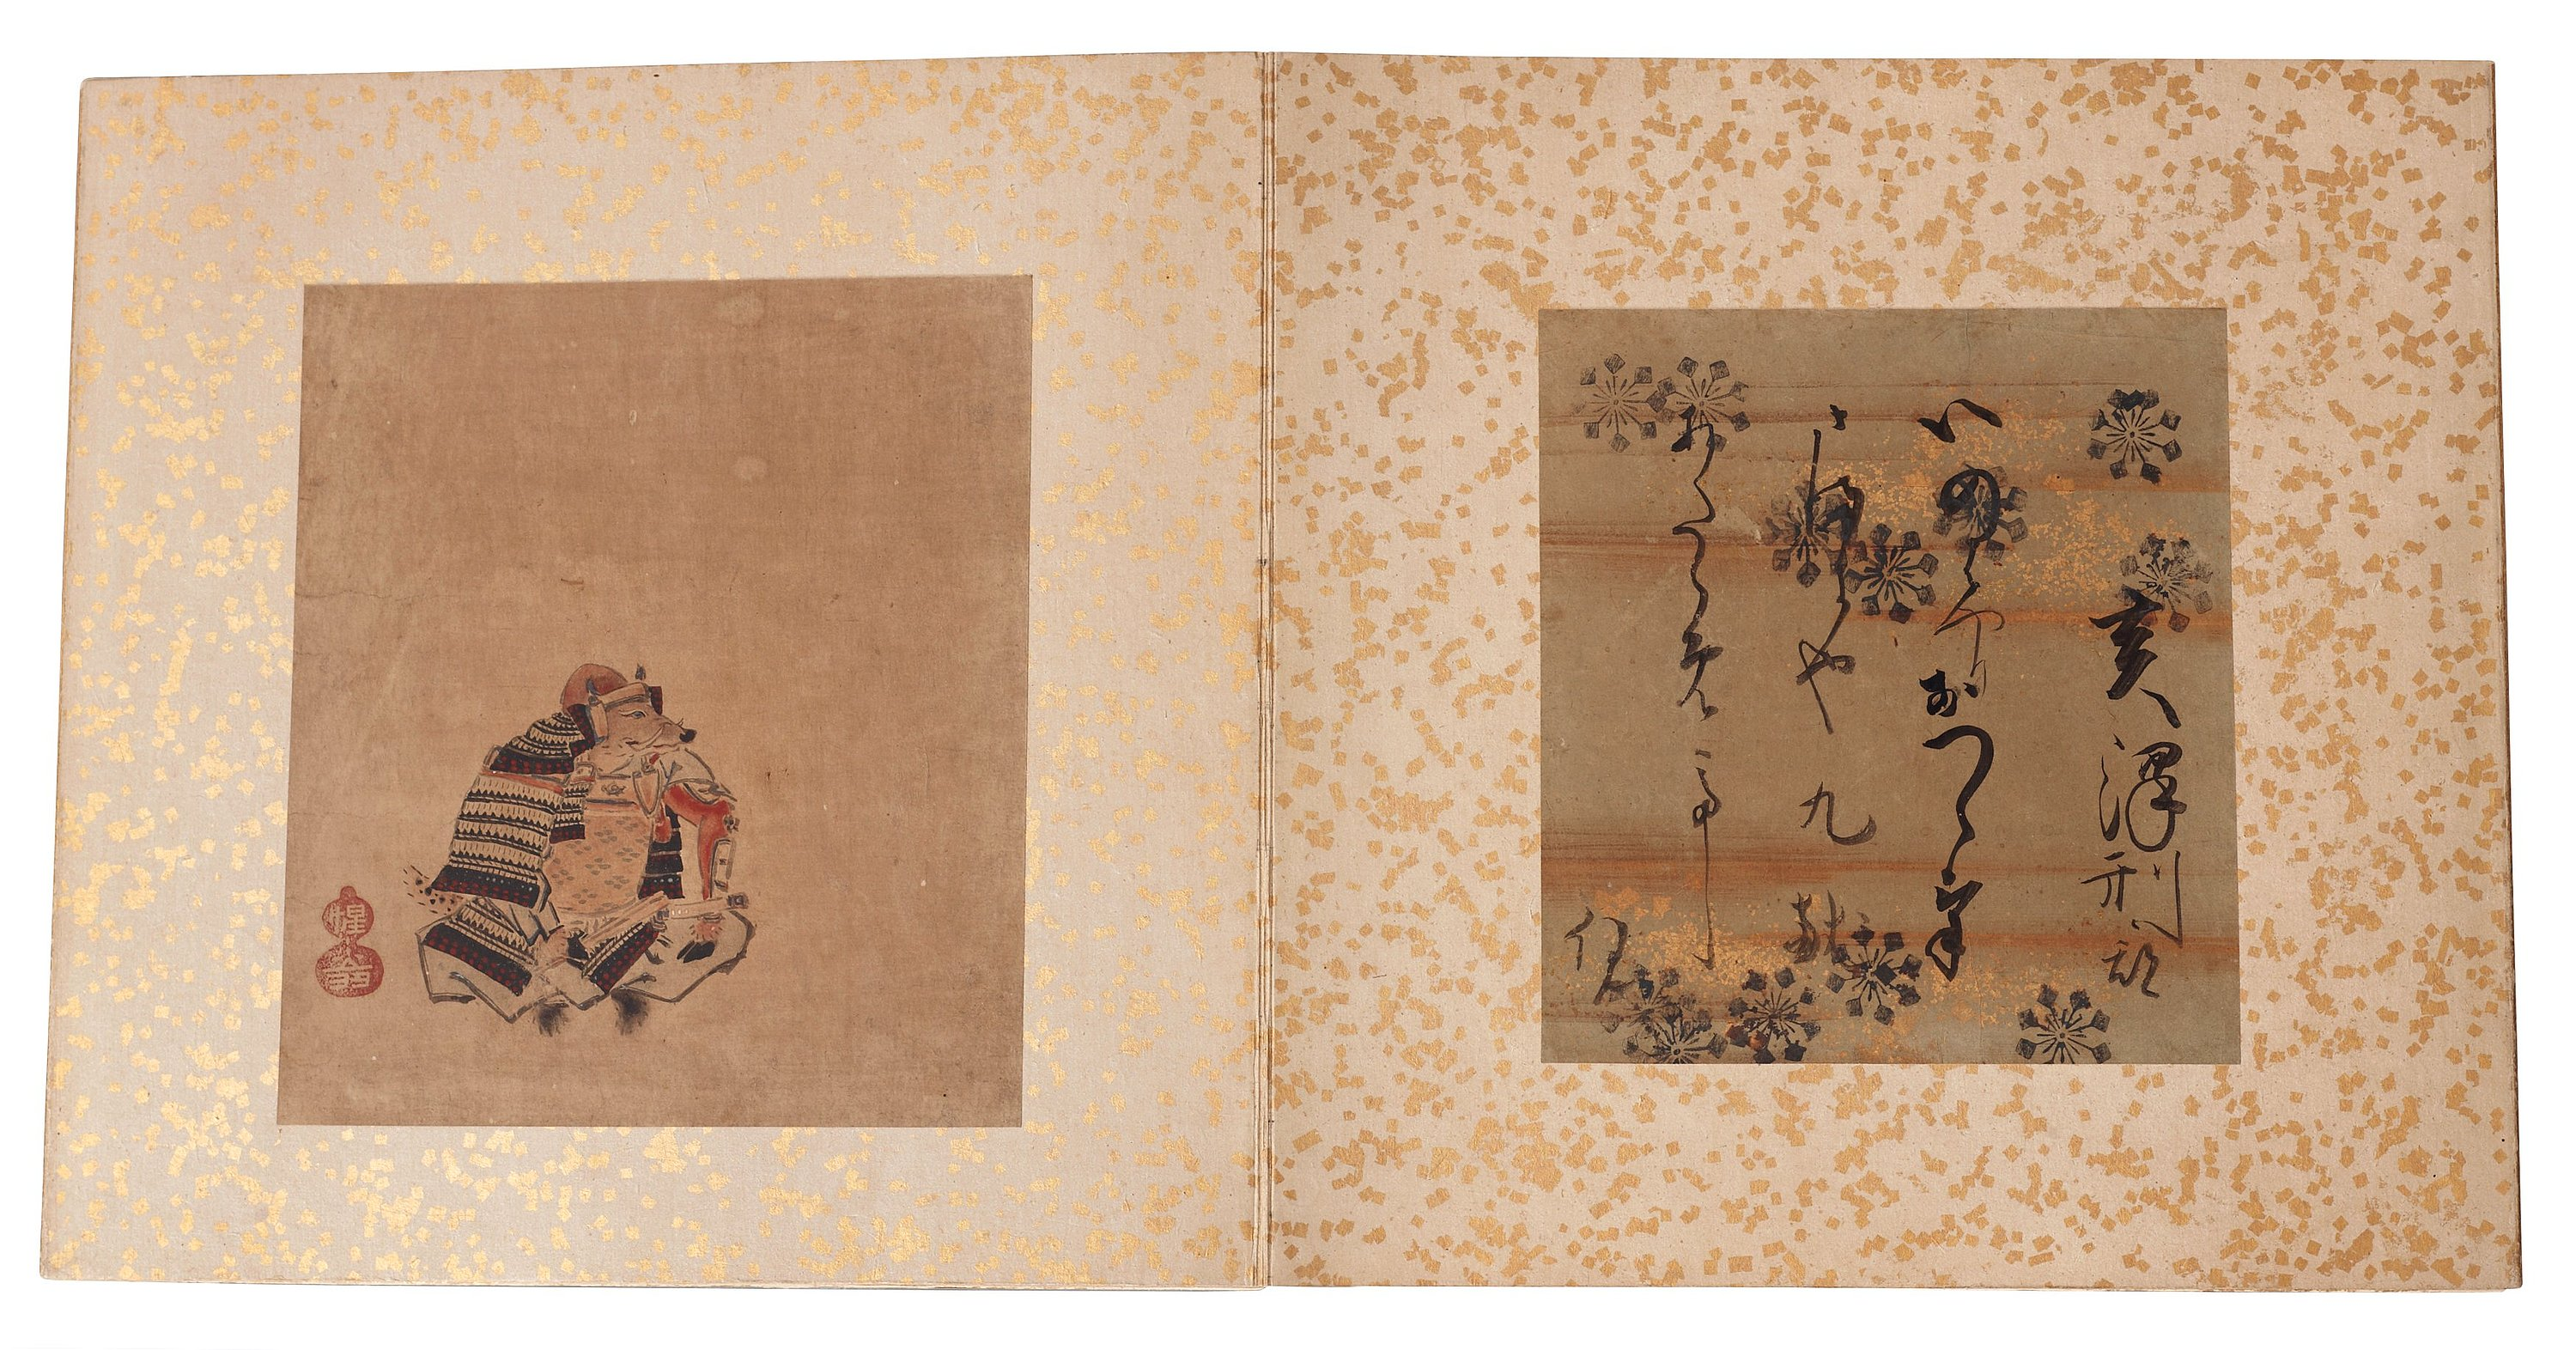 A Japanese album comprising 12 paintings with calligraphy of the